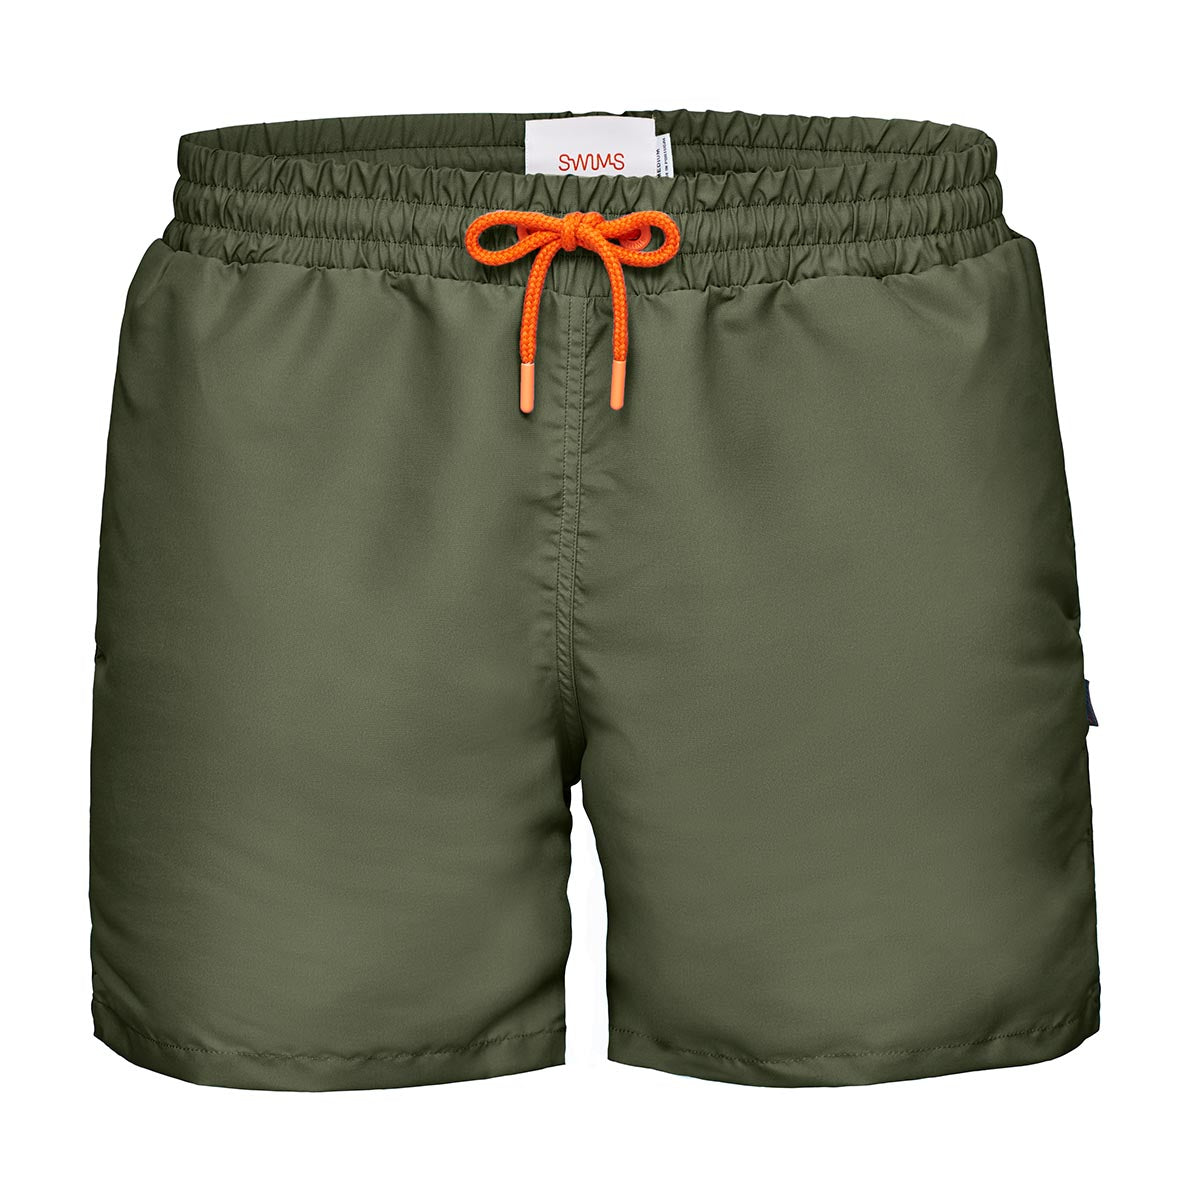 Breeze Portofino Swim Shorts (Short) - background::white,variant::Olive